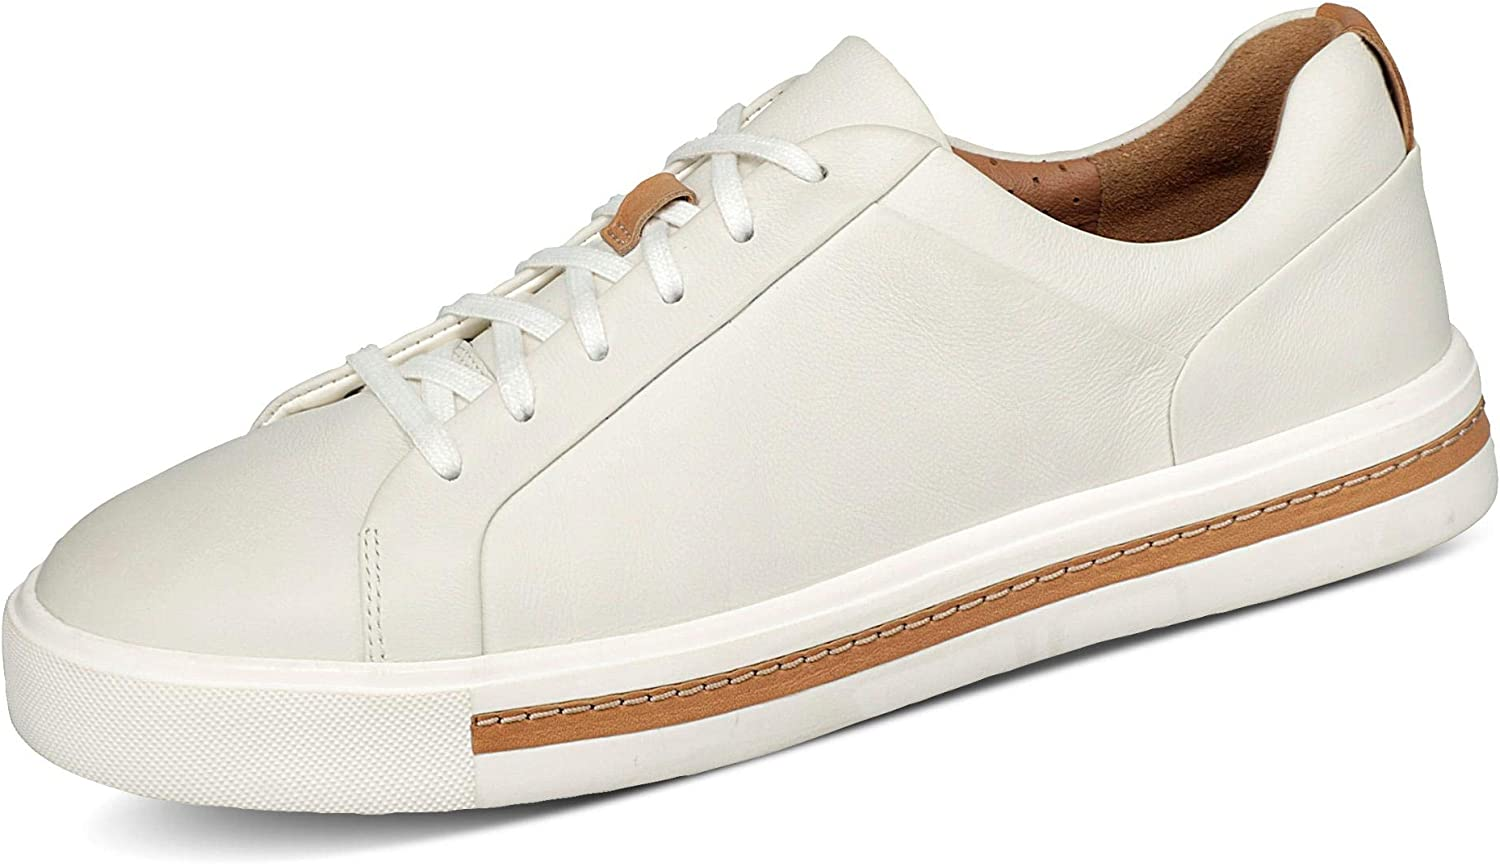 Clarks It is very popular Un Maui Lace Max 90% OFF Trainers Shoes Women Low Top White